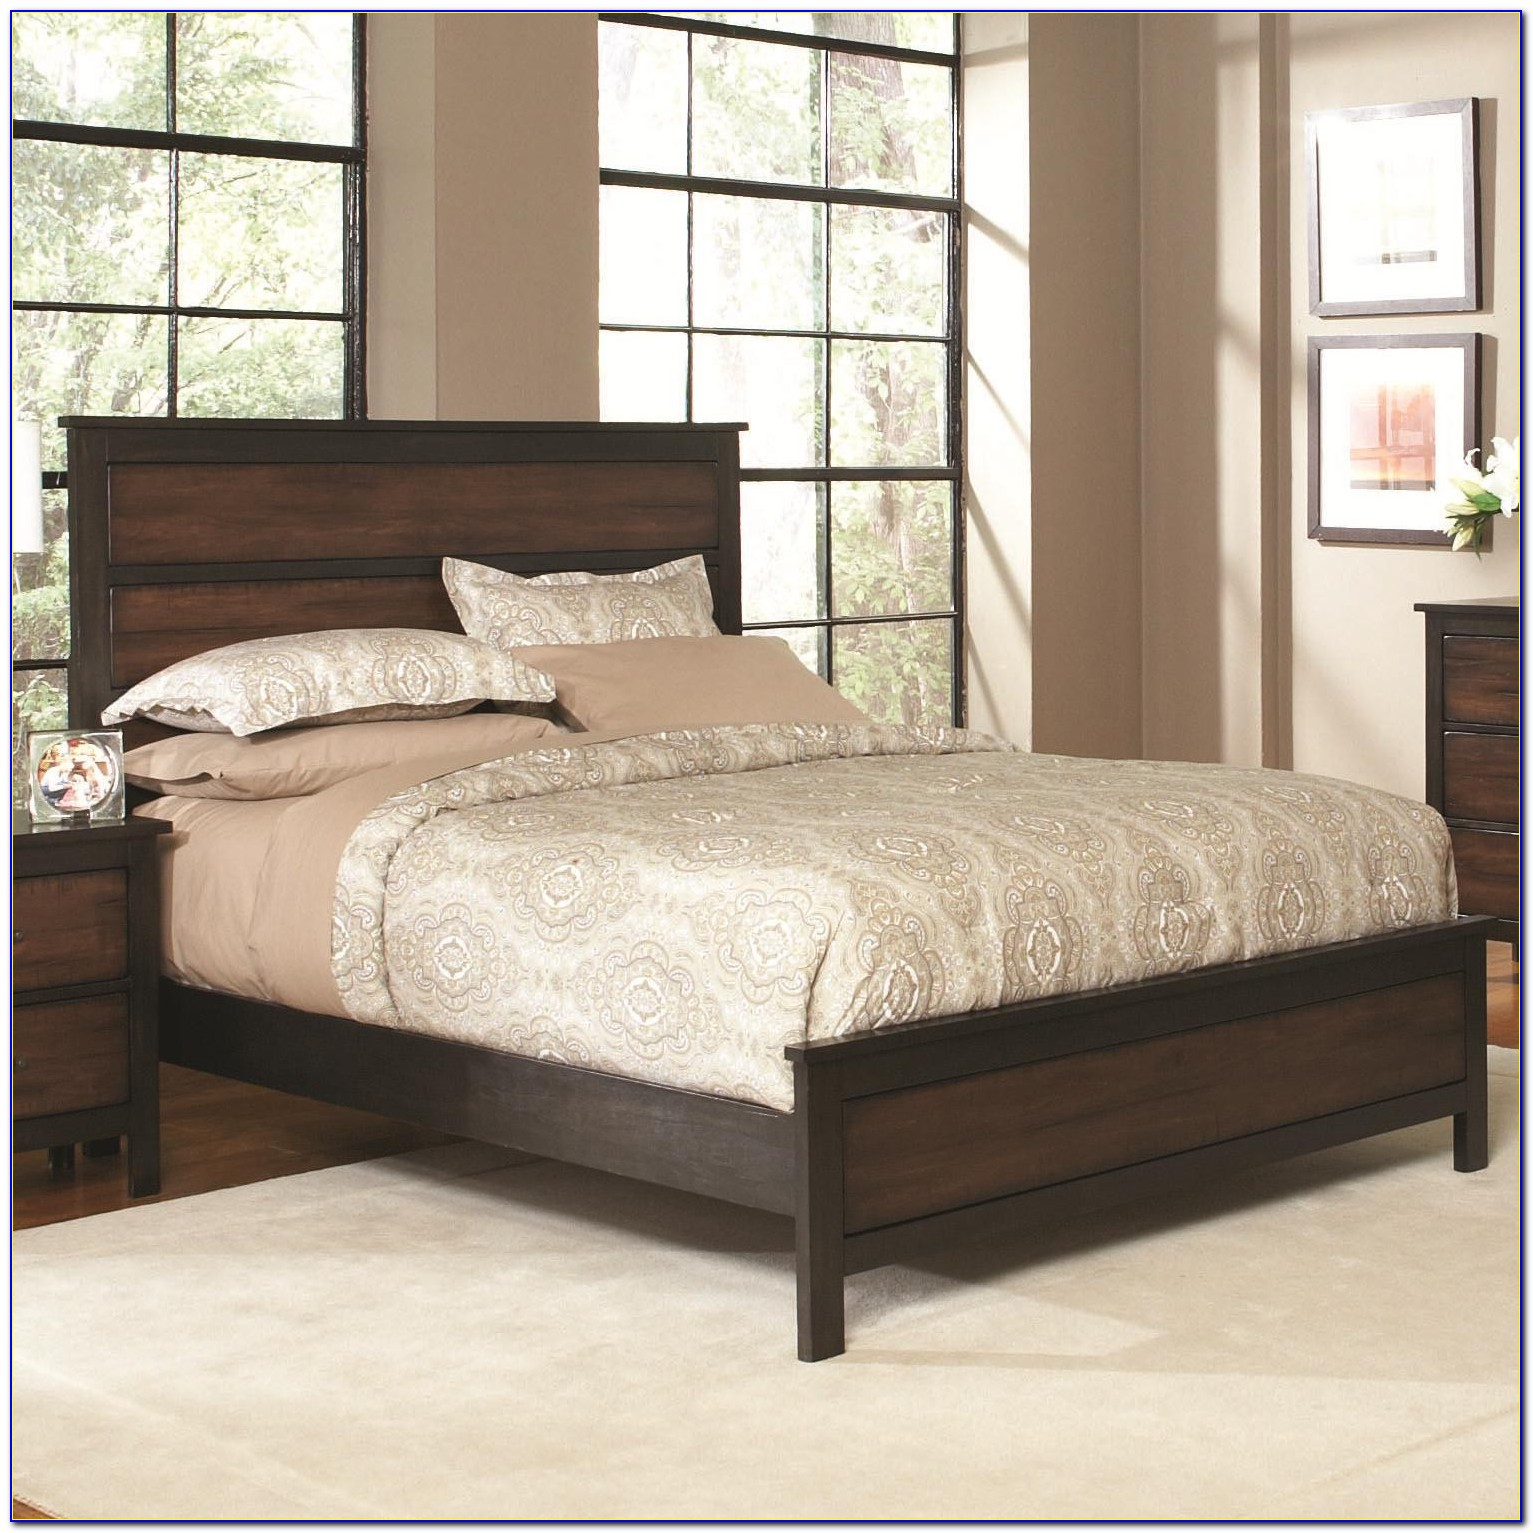 Extra Large King Size Headboards